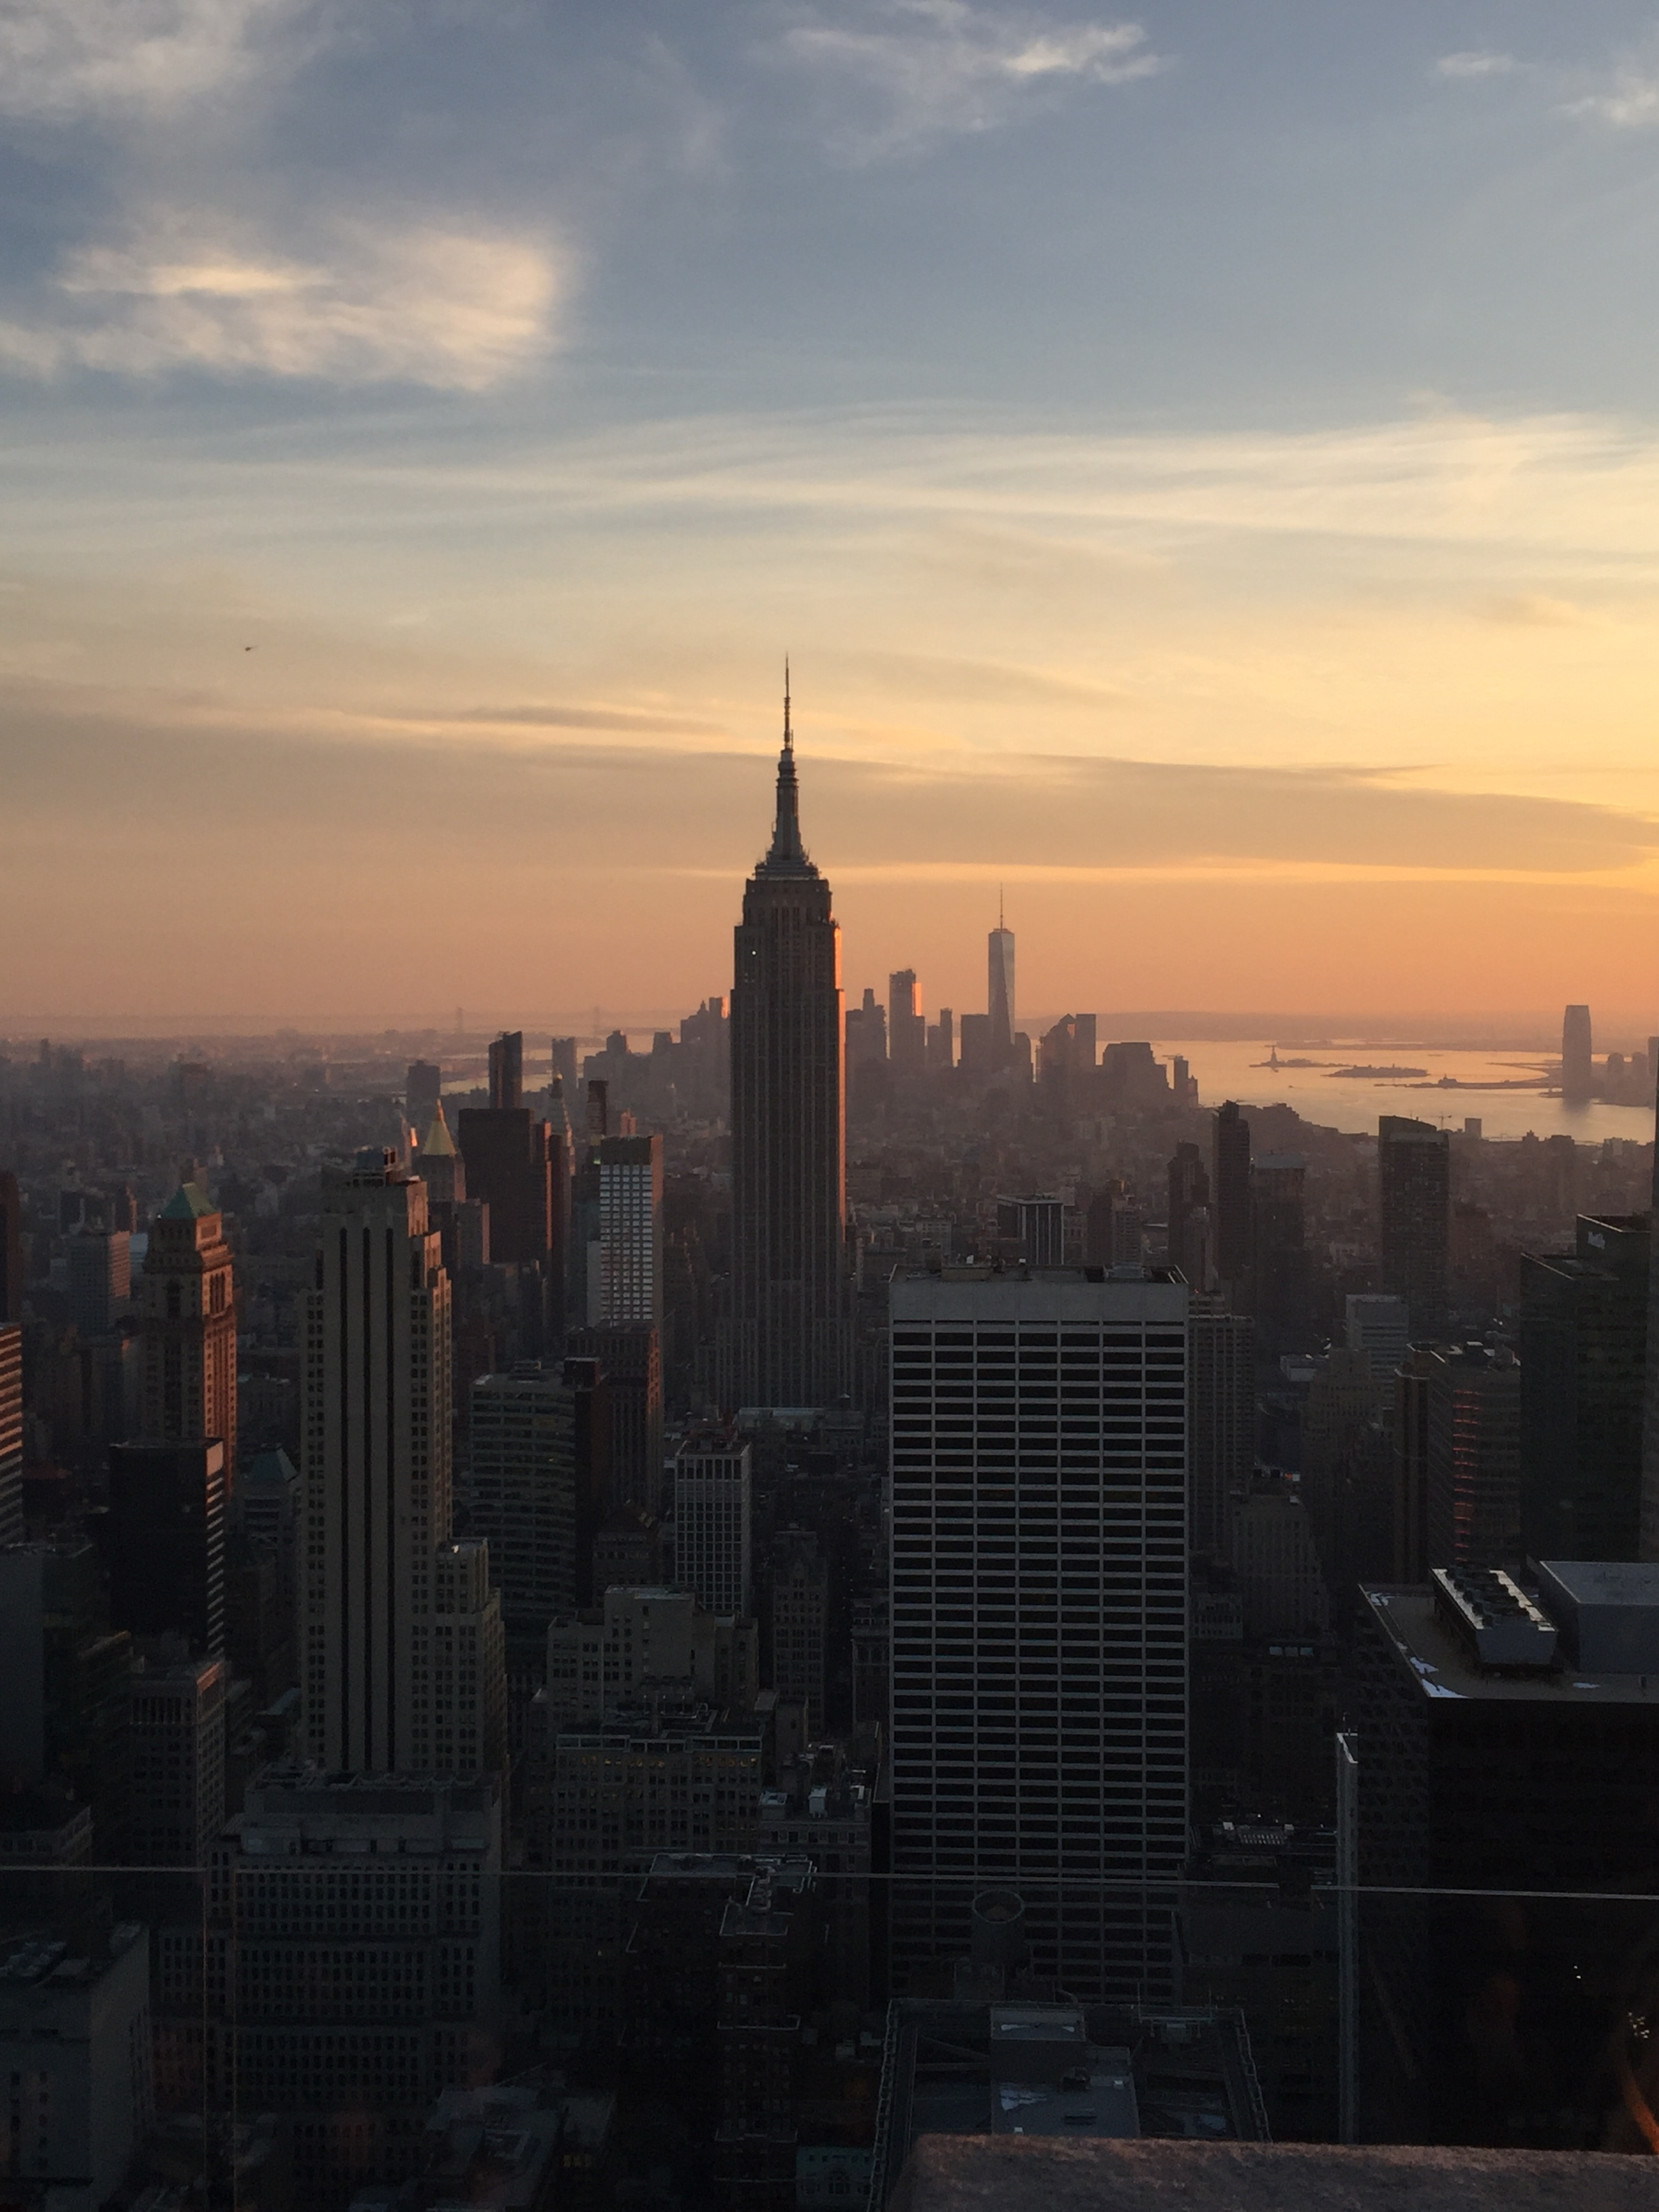 A view of Manhattan and the Empire State Building from Top of the Rock at sunset.